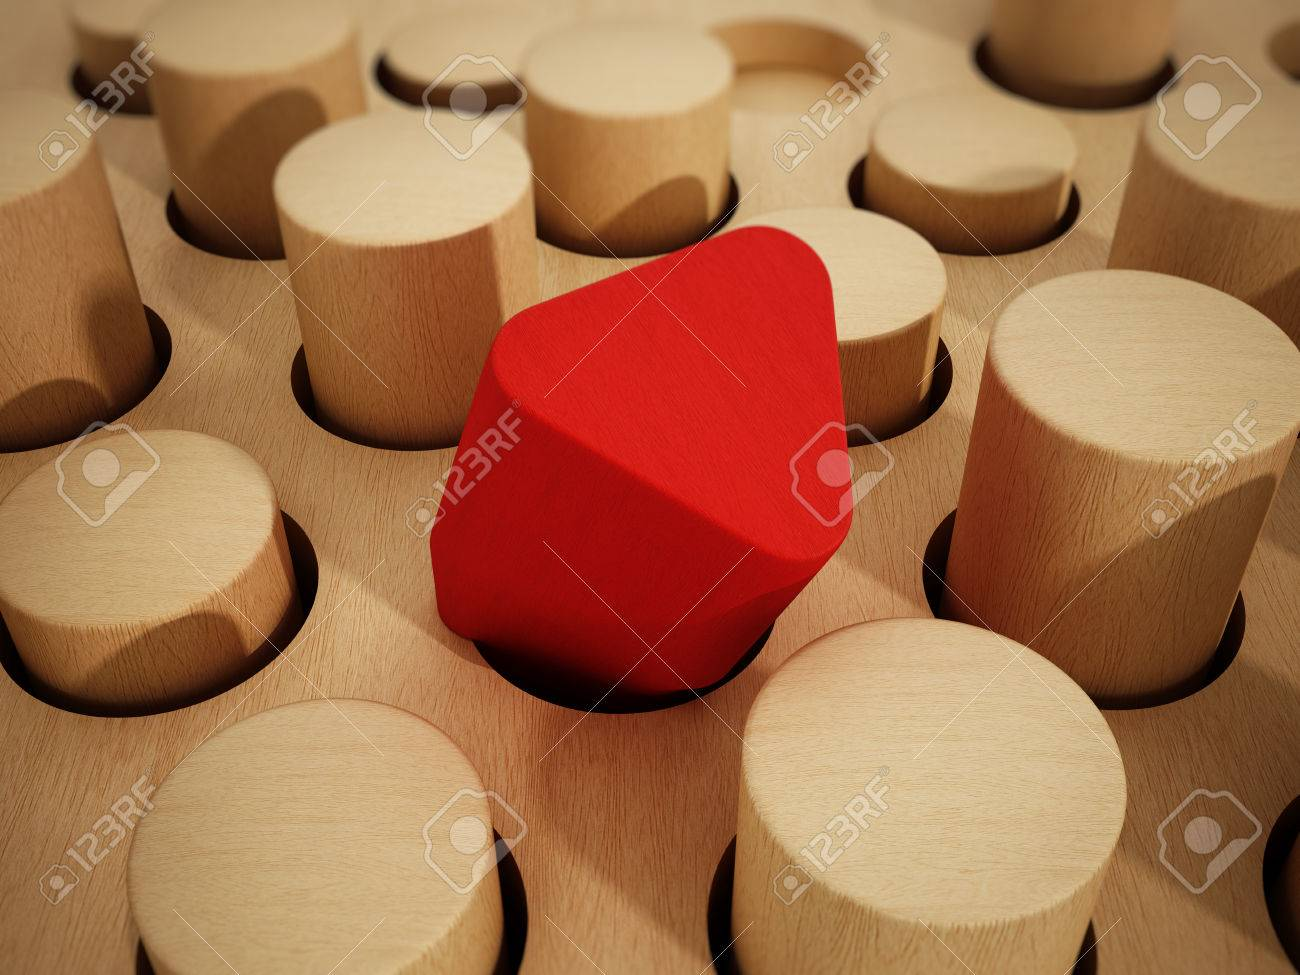 Red prism wooden block standing out among wooden cylinders. 3D illustration. Stock Illustration - 61035758